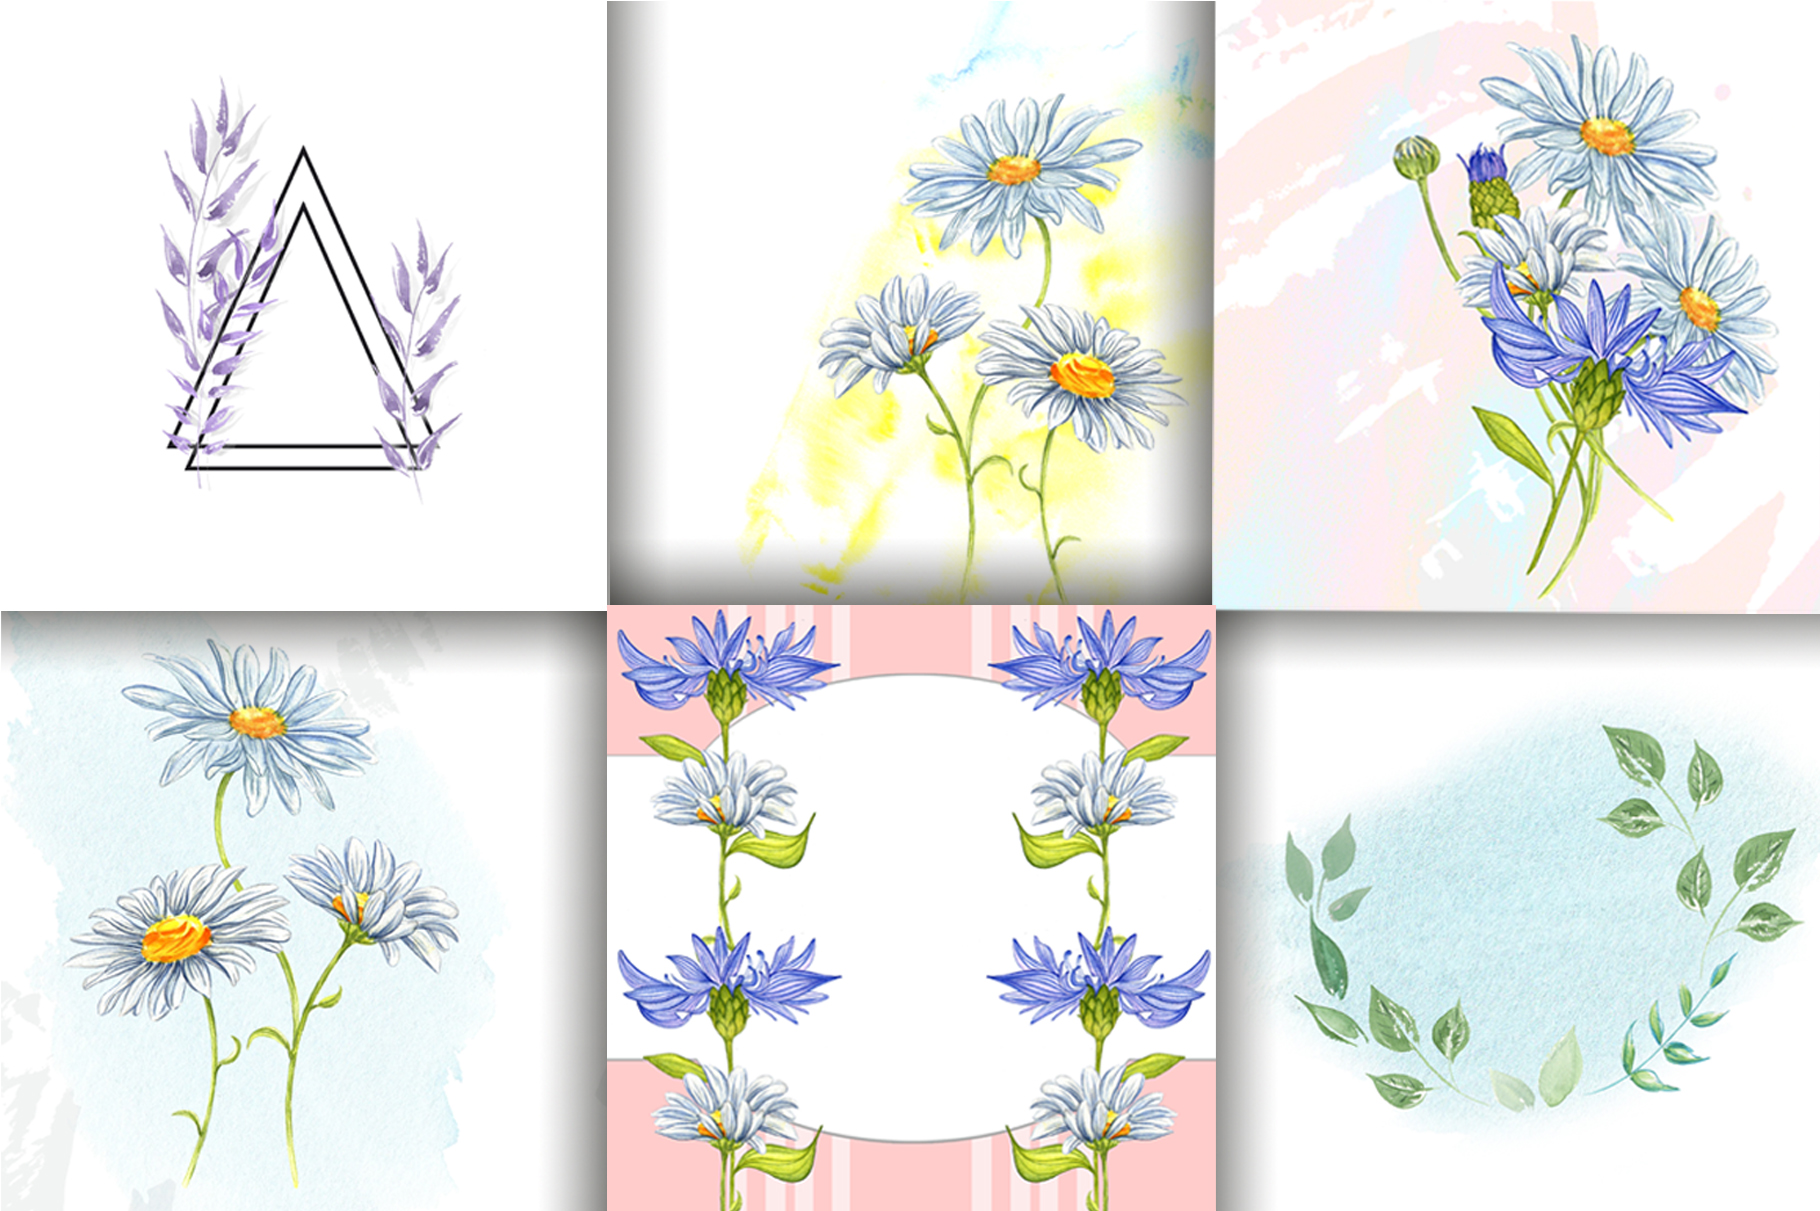 Wildflowers and herbs gentle watercolor collection example image 5